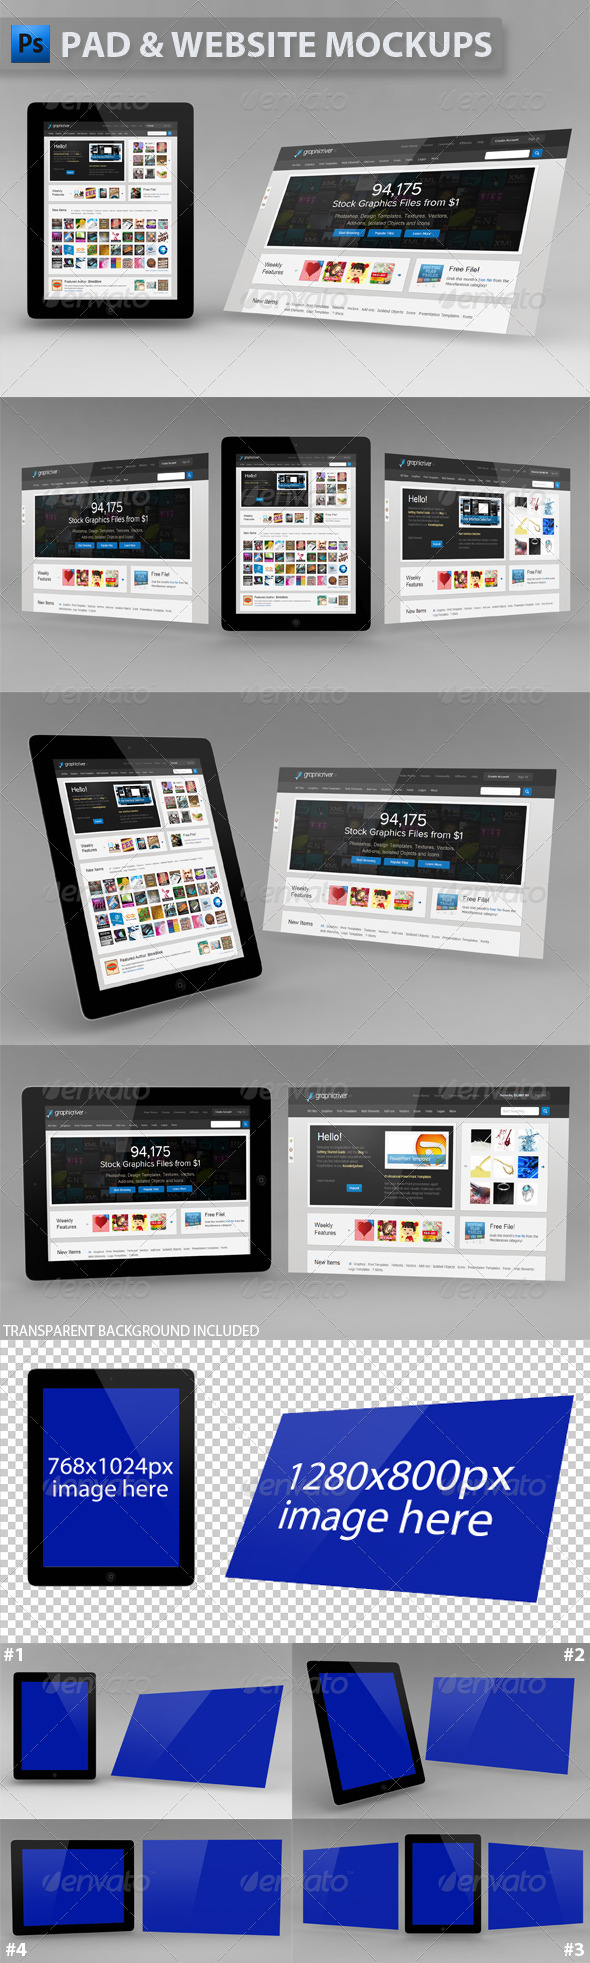 Black Pad and Image Mockups - Multiple Displays